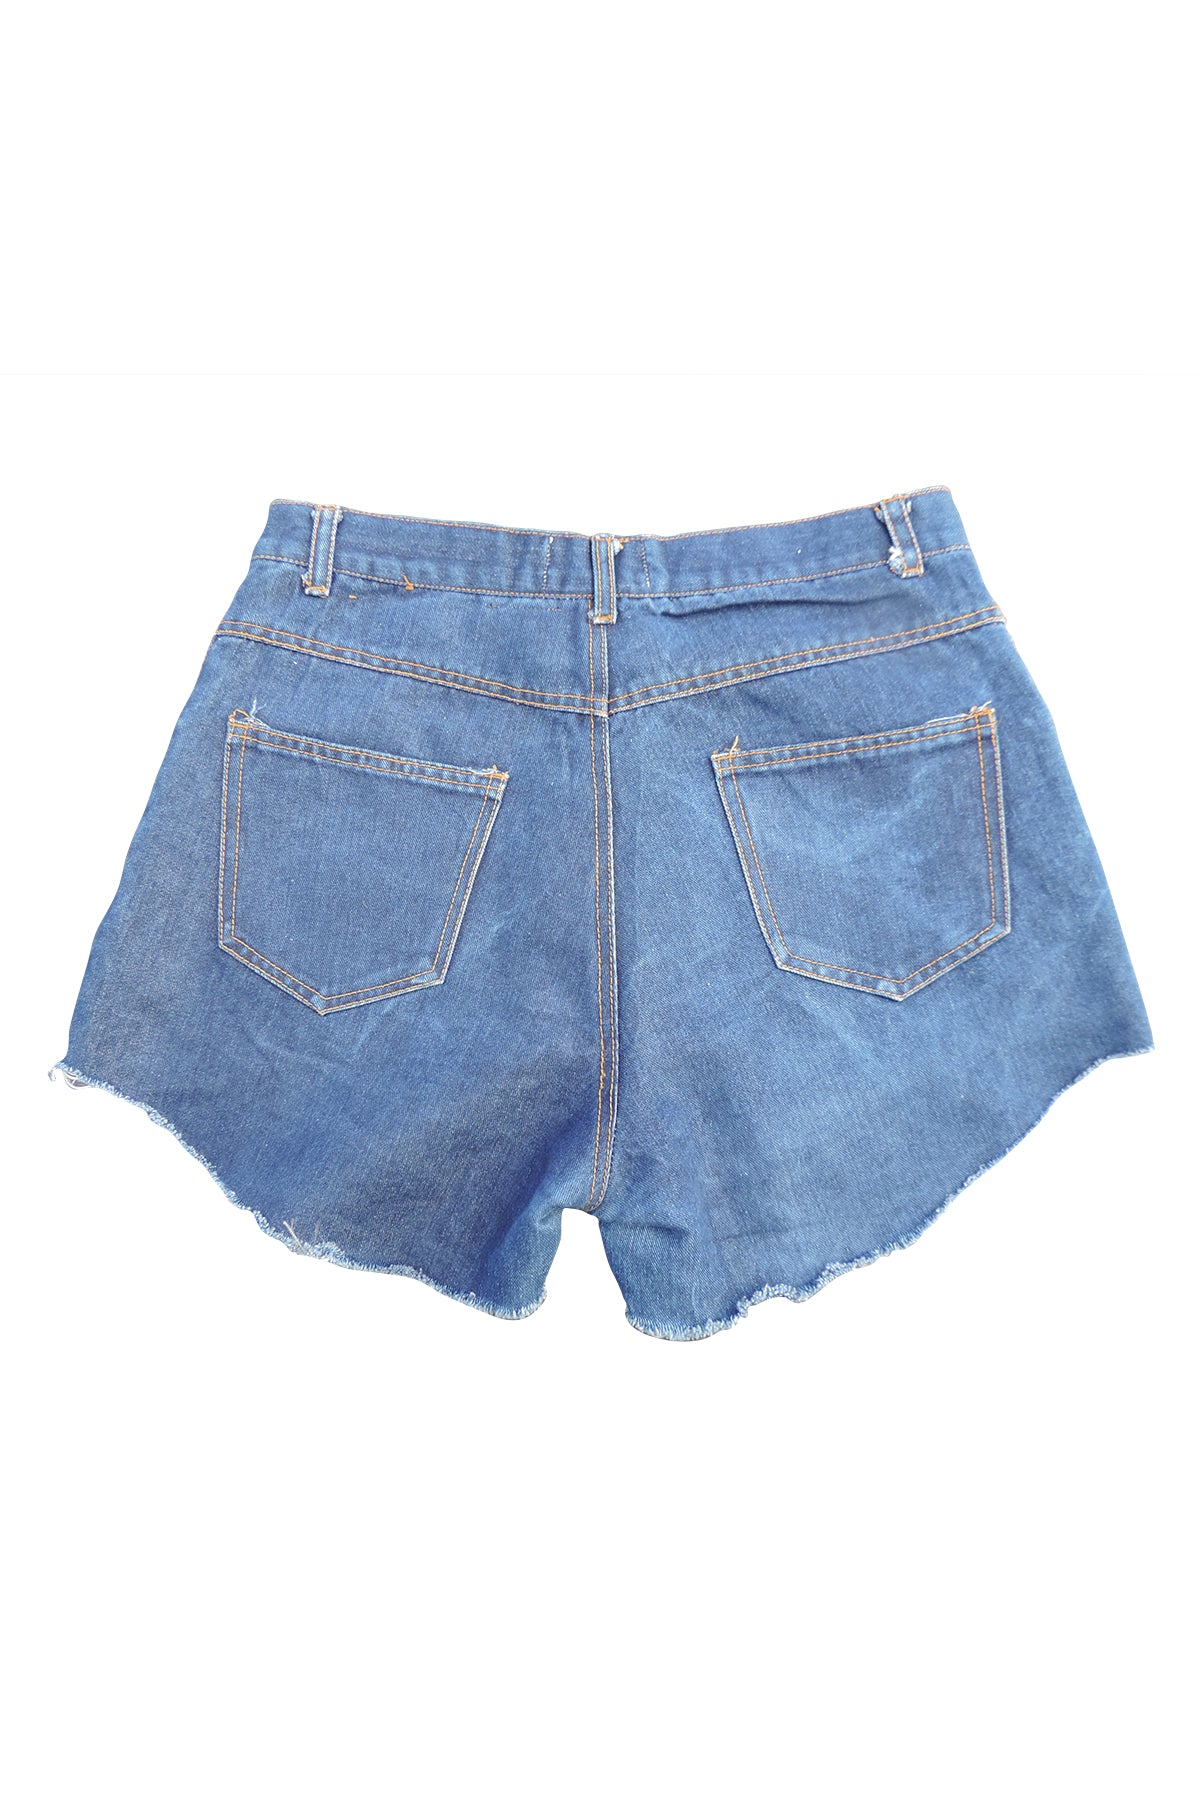 BoBo- Upcycled  Denim Shorts- Bolivian Textile- Commited Sz 11/12 31""